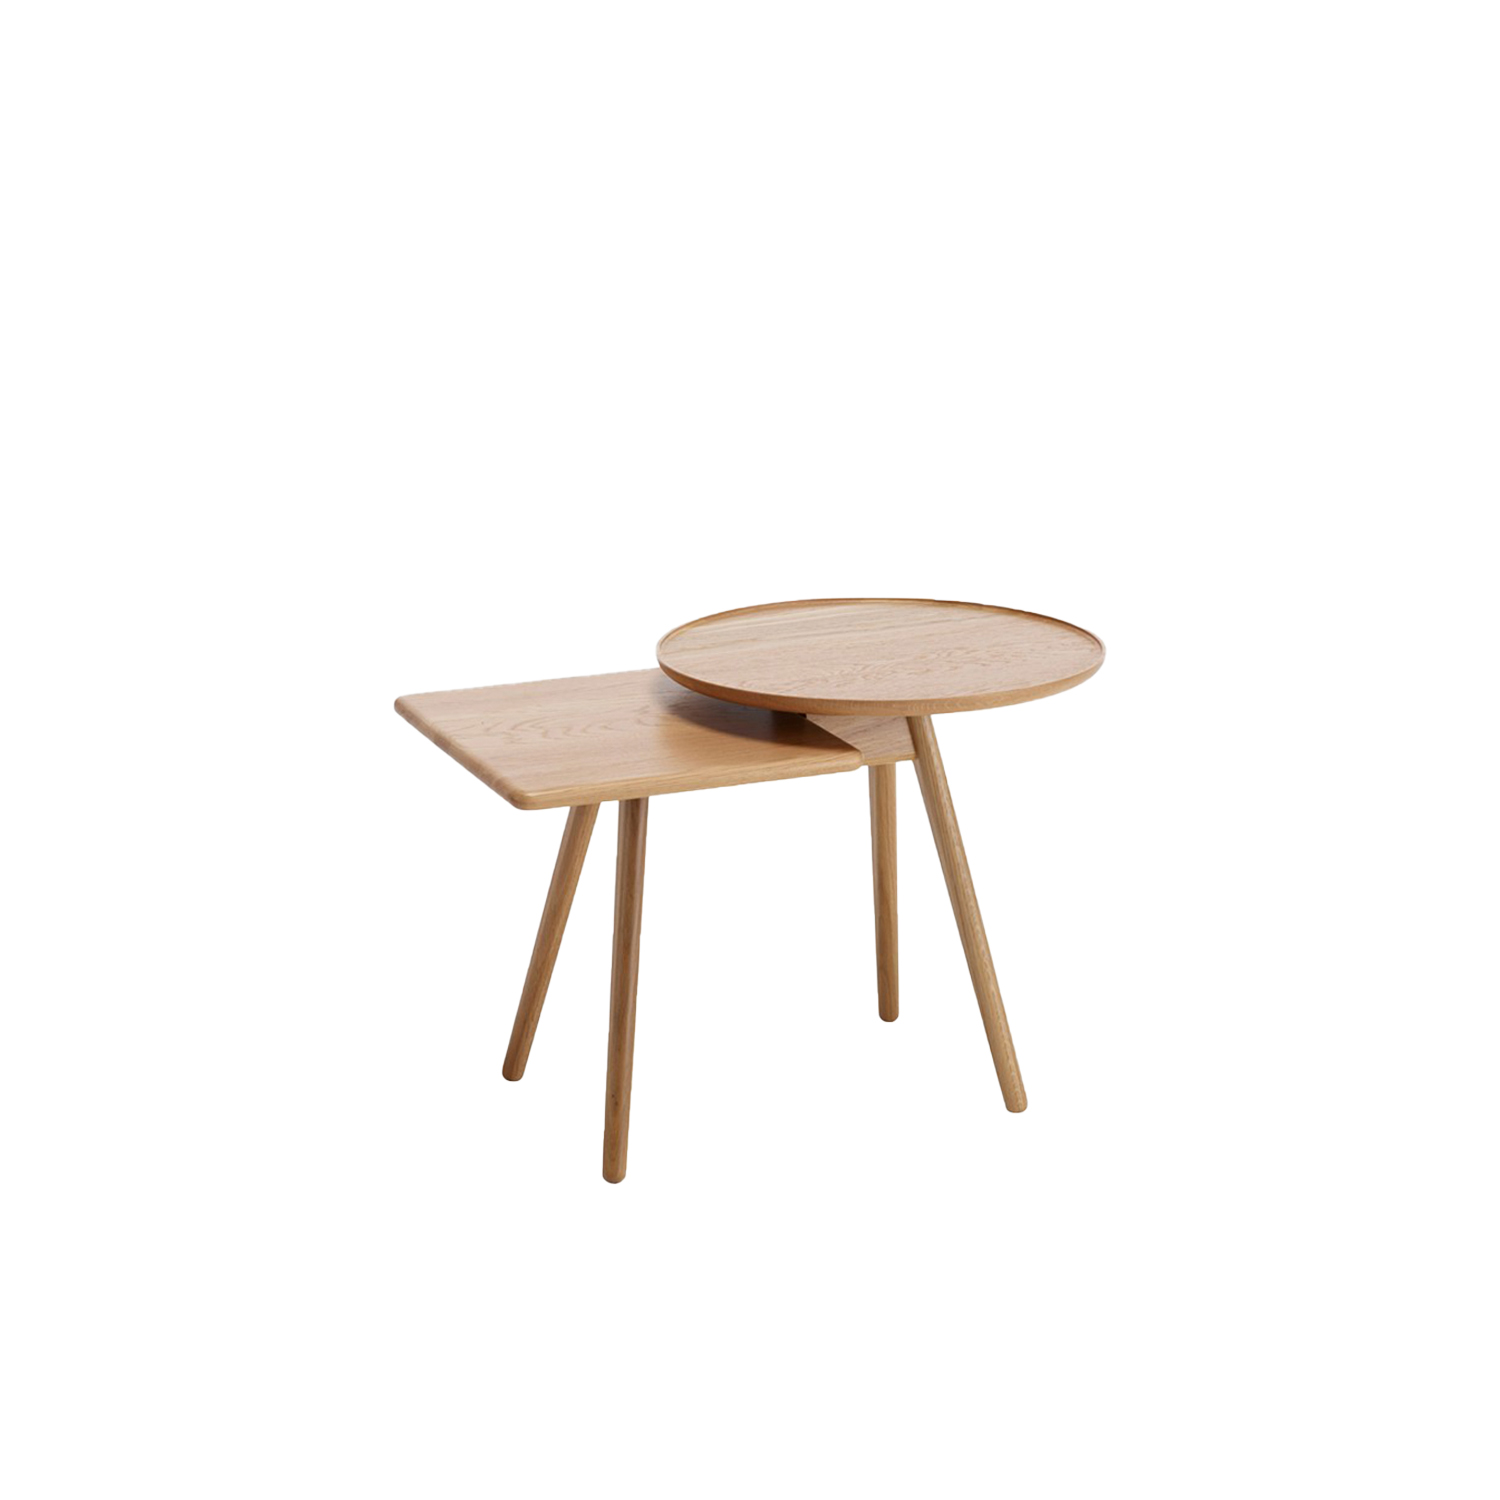 Mopsy Small Table - Mopsy (2016) is a sofa table with round and square-shaped tops at different heights in an overlapped combination on the same leg frame. A number of Mopsy tables can be grouped together in the same type of wood or colour, or in a combination of different types of wood and colours. The tabletops and leg frames are made from solid wood. Choose from oak, birch, ash, standard stains on ash, white glazed oak or ash and standard colors.  For standard colors the tabletop is made in MDF. Use Mopsy to furnish lobbies, all kinds of meeting places or next to your sofa at home.  Different top and leg finishes are available at an extra cost. Please enquire for more details. | Matter of Stuff